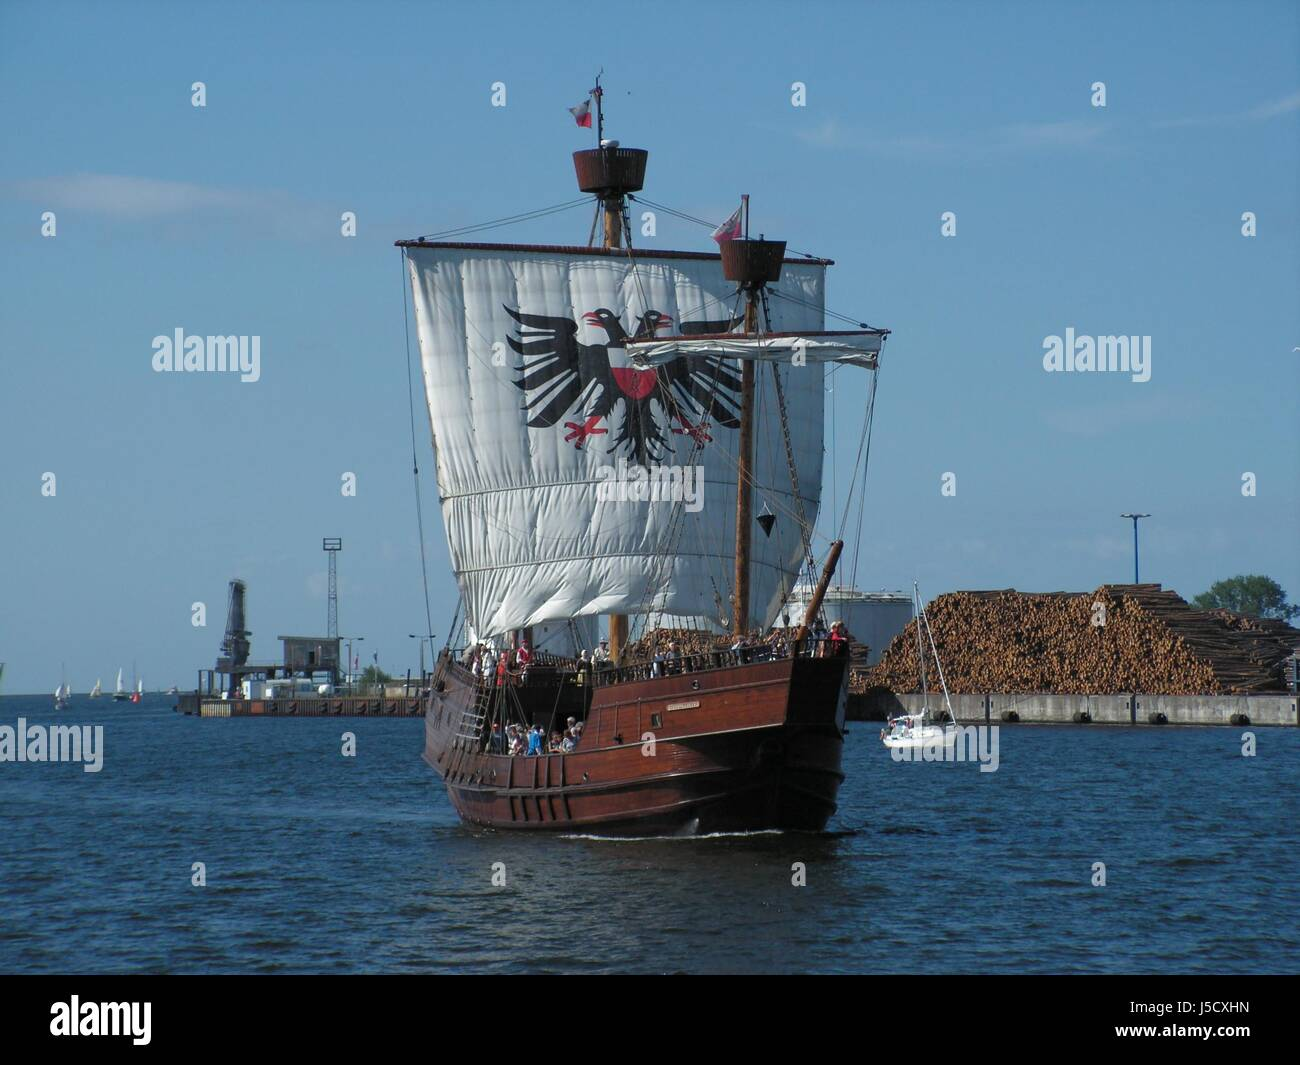 wood harbor sail water baltic sea salt water sea ocean Hanseatic city dew - Stock Image